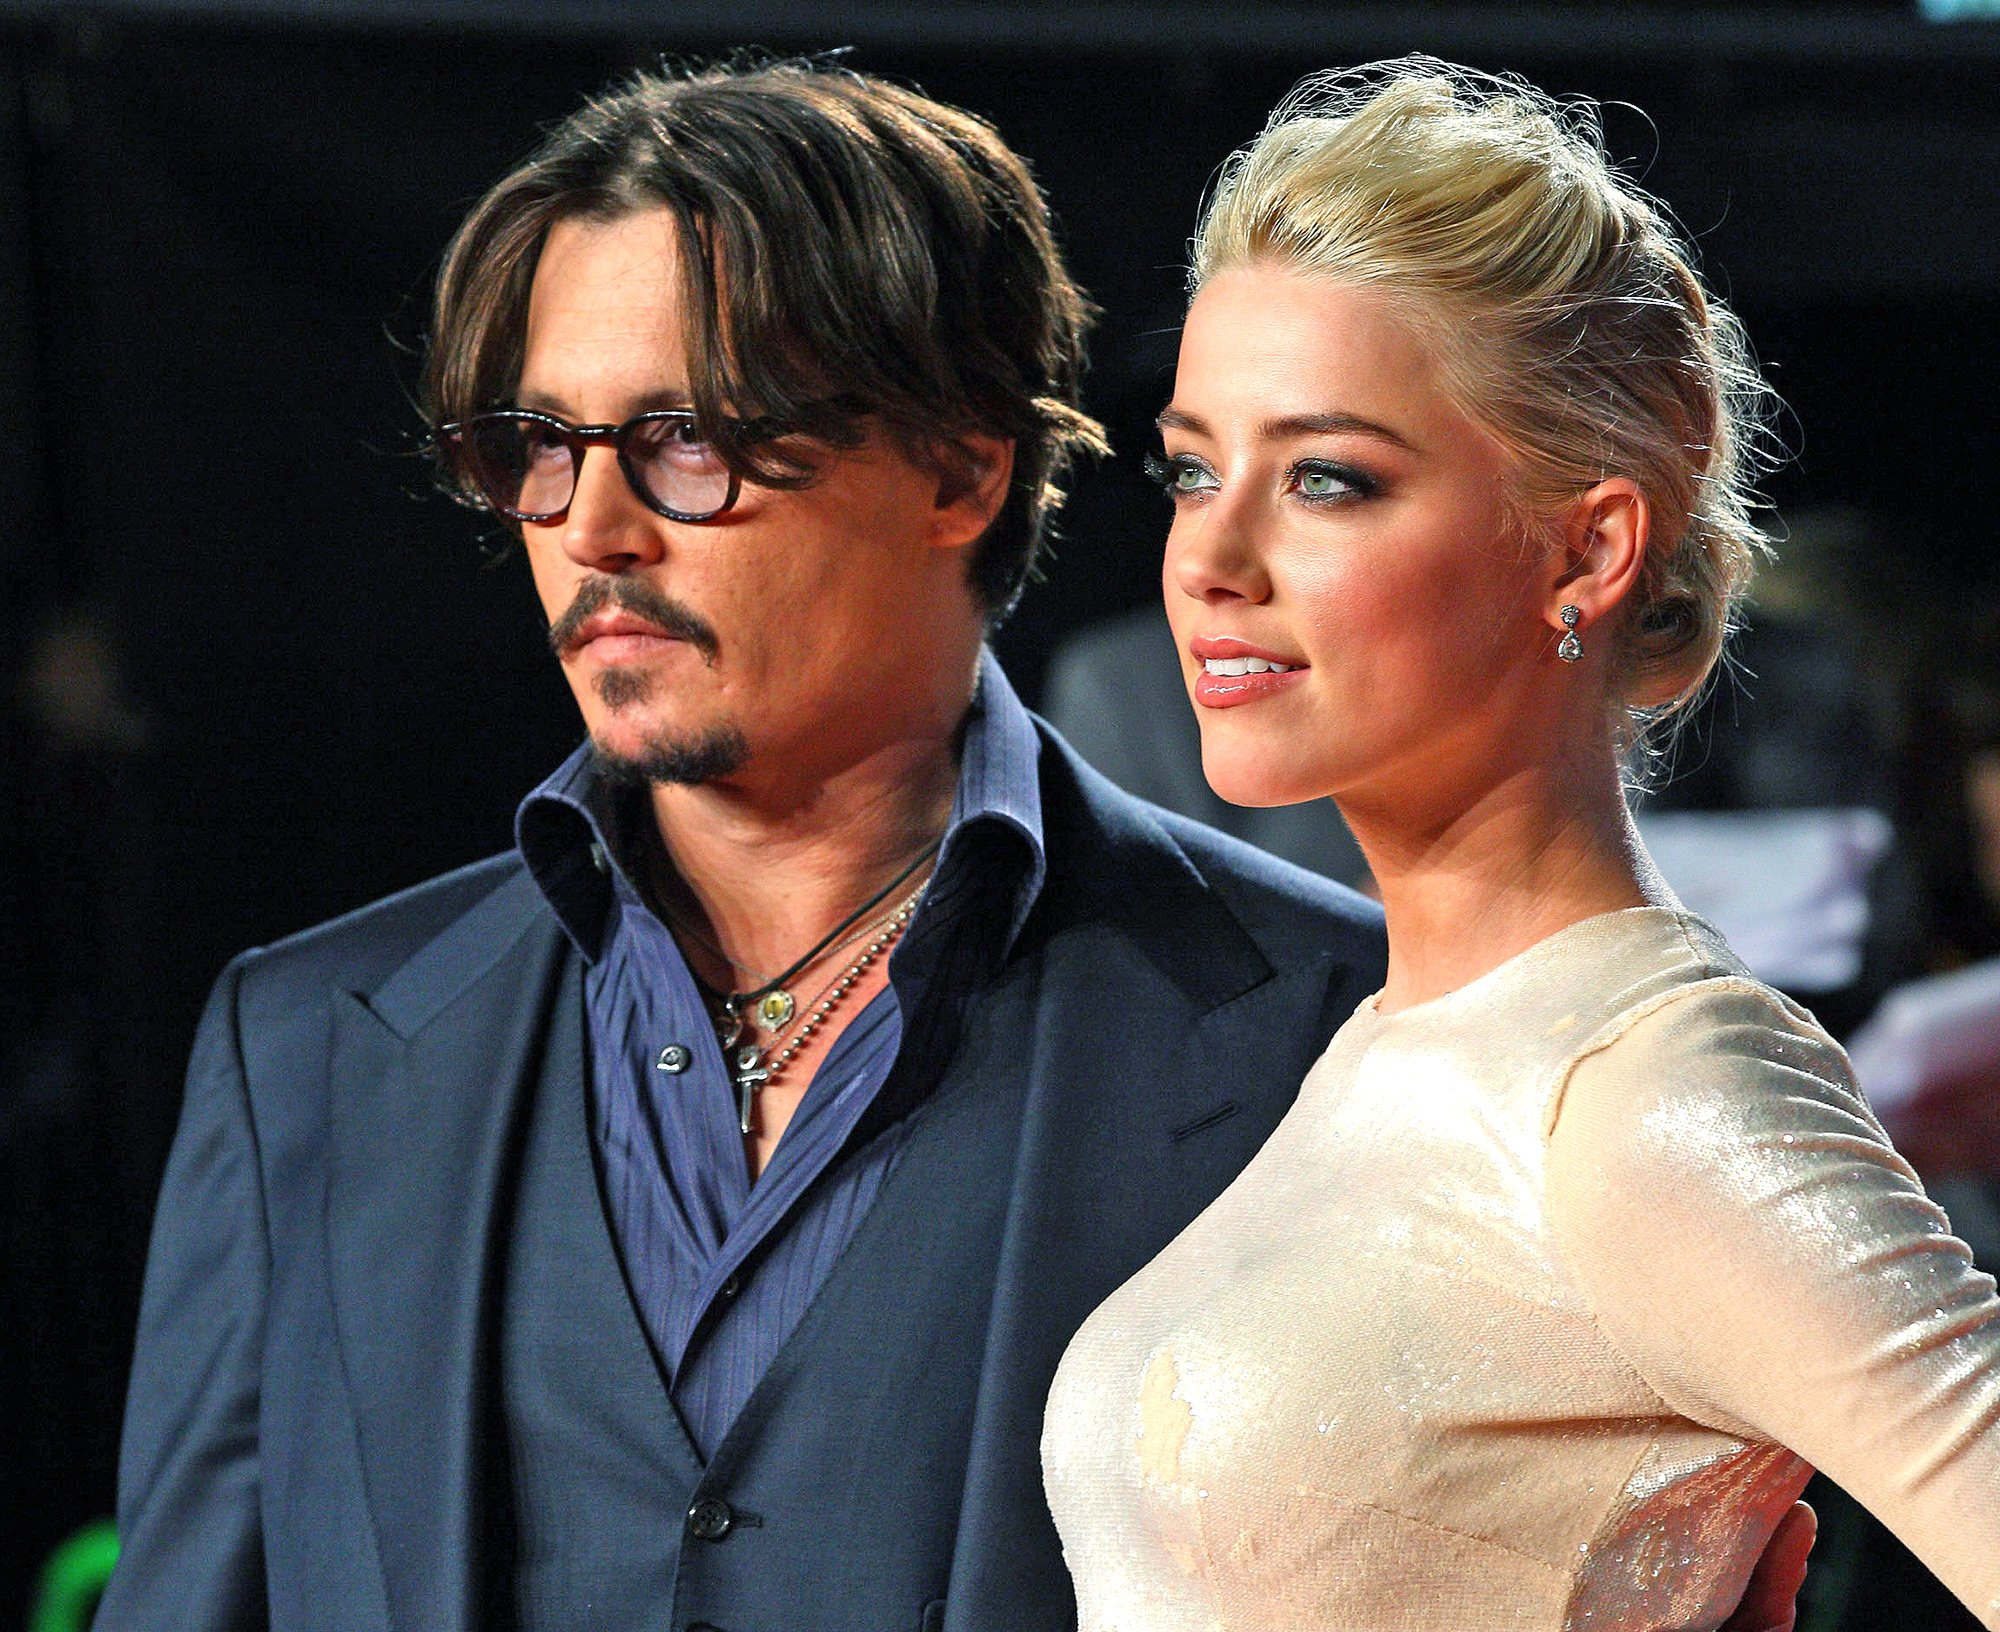 Johnny Depp Alters His Amber Heard Tattoo Again — This Time from 'Scum' to 'Scam'